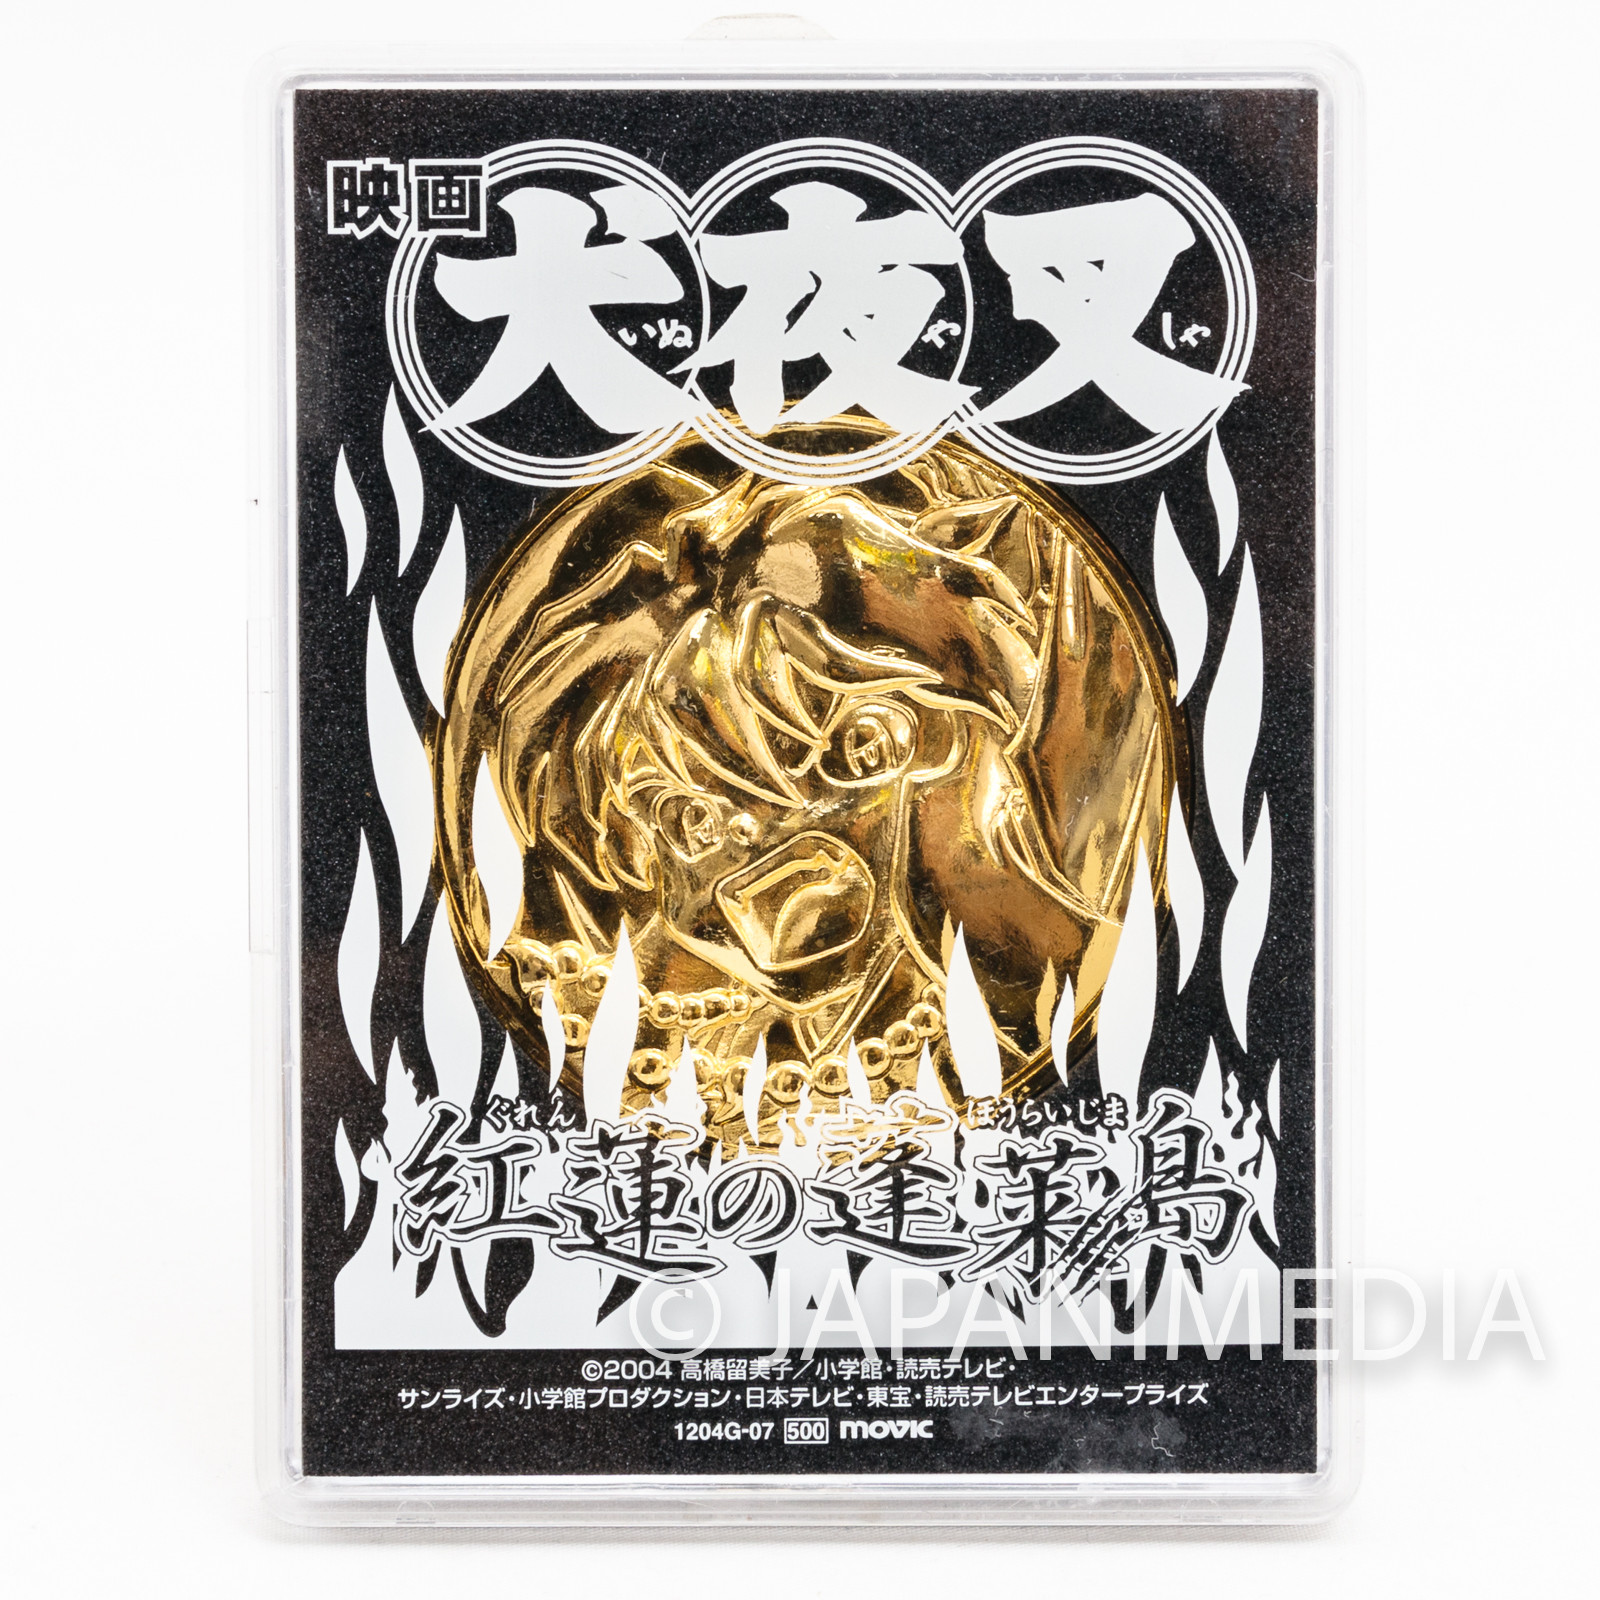 Inuyasha the Movie Golden Medal Movic JAPAN ANIME MANGA TAKAHASHI RUMIKO 3